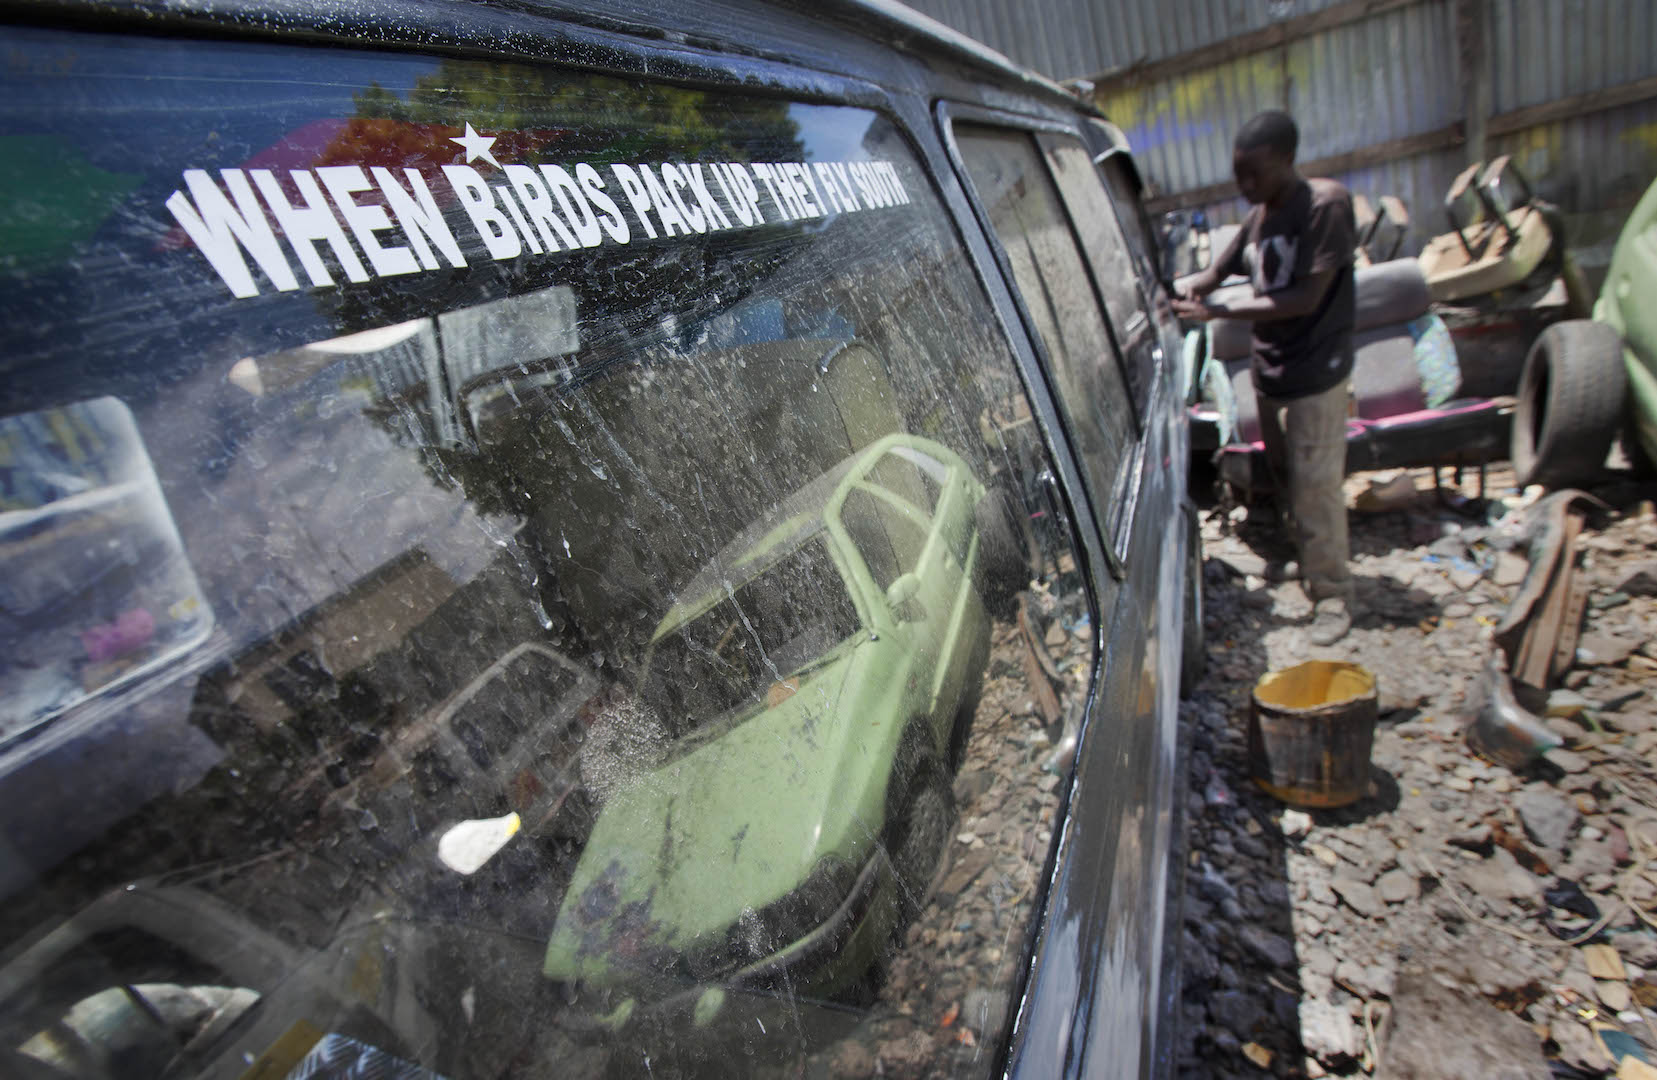 A painter strips paintwork and decals from a matatu or minibus-taxi at the Moha Graphics bodyshop in the Eastleigh area of Nairobi, Kenya.